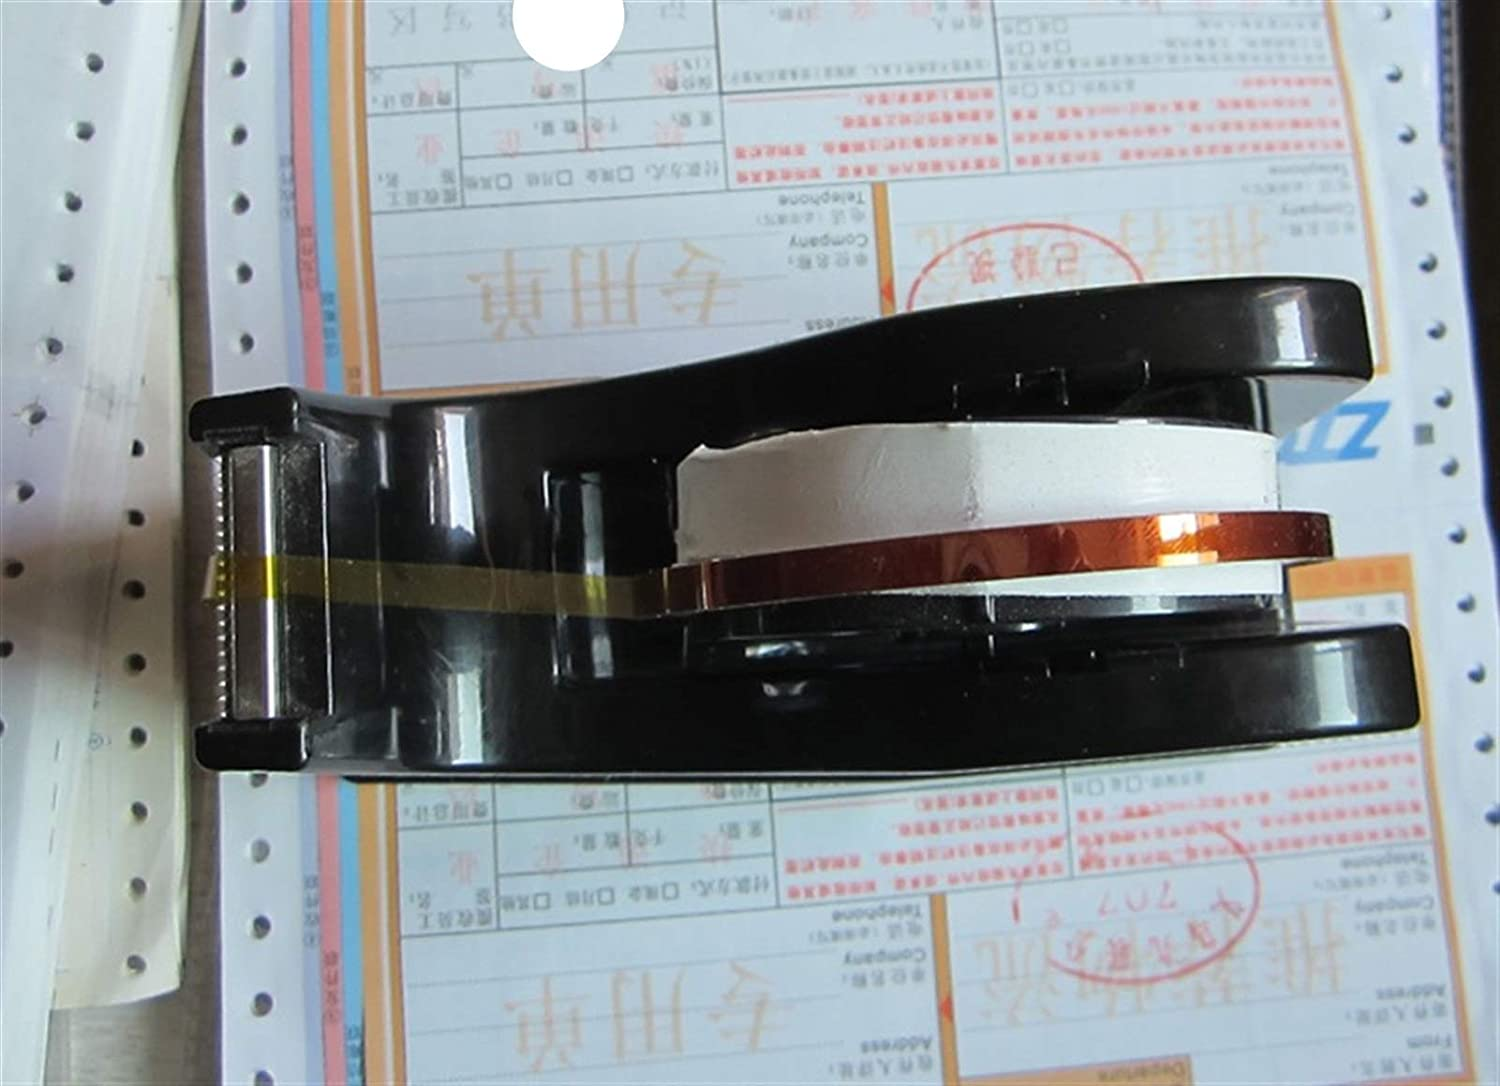 Professional Wtsfwf Wholesale Price Exclusive Tape Hea Ranking integrated Cash special price 1st place Dispenser